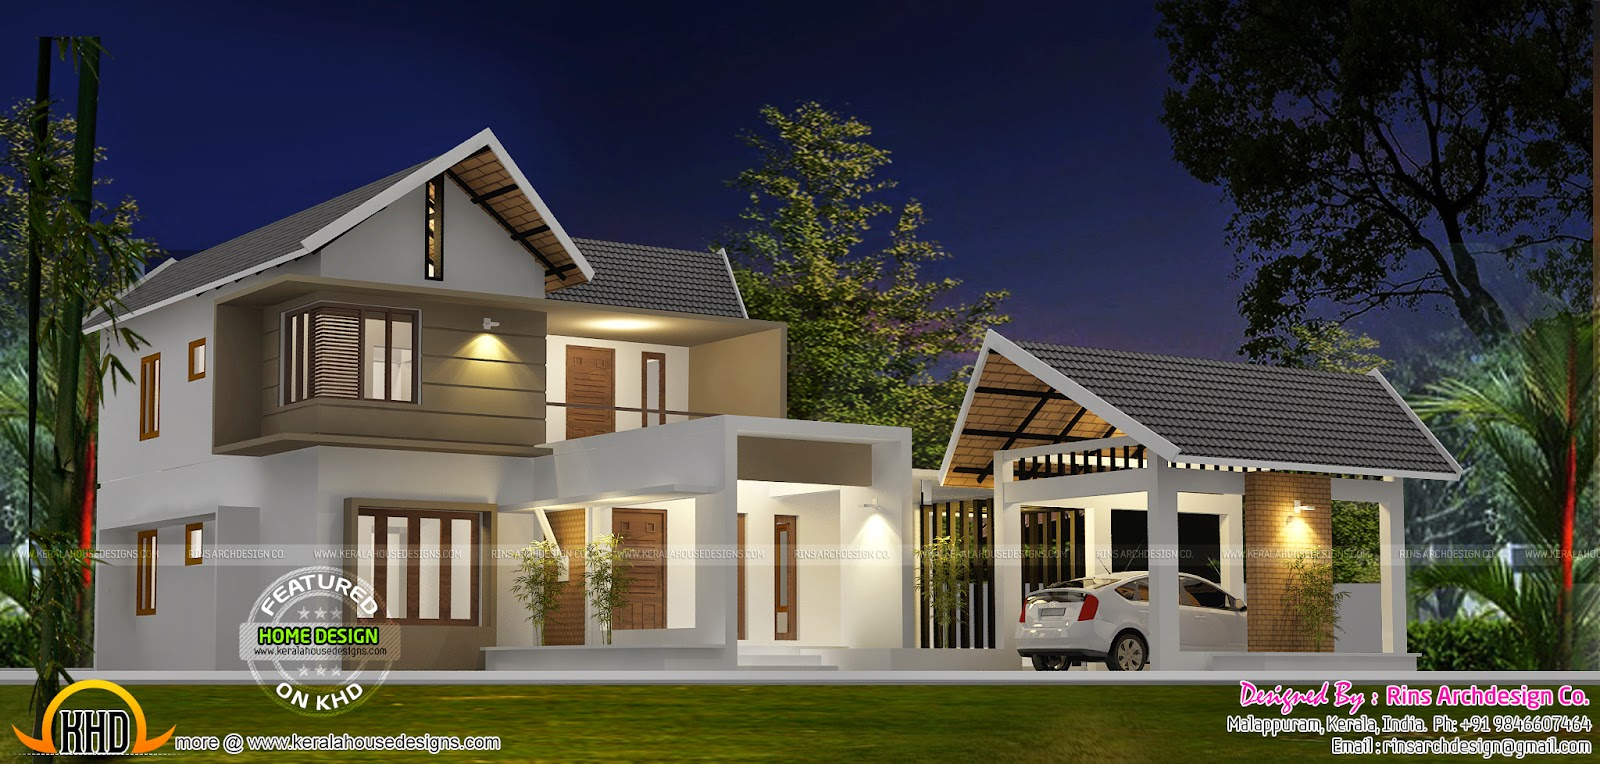 Separate Garage Of Separate Garage House Plan Kerala Home Design And Floor